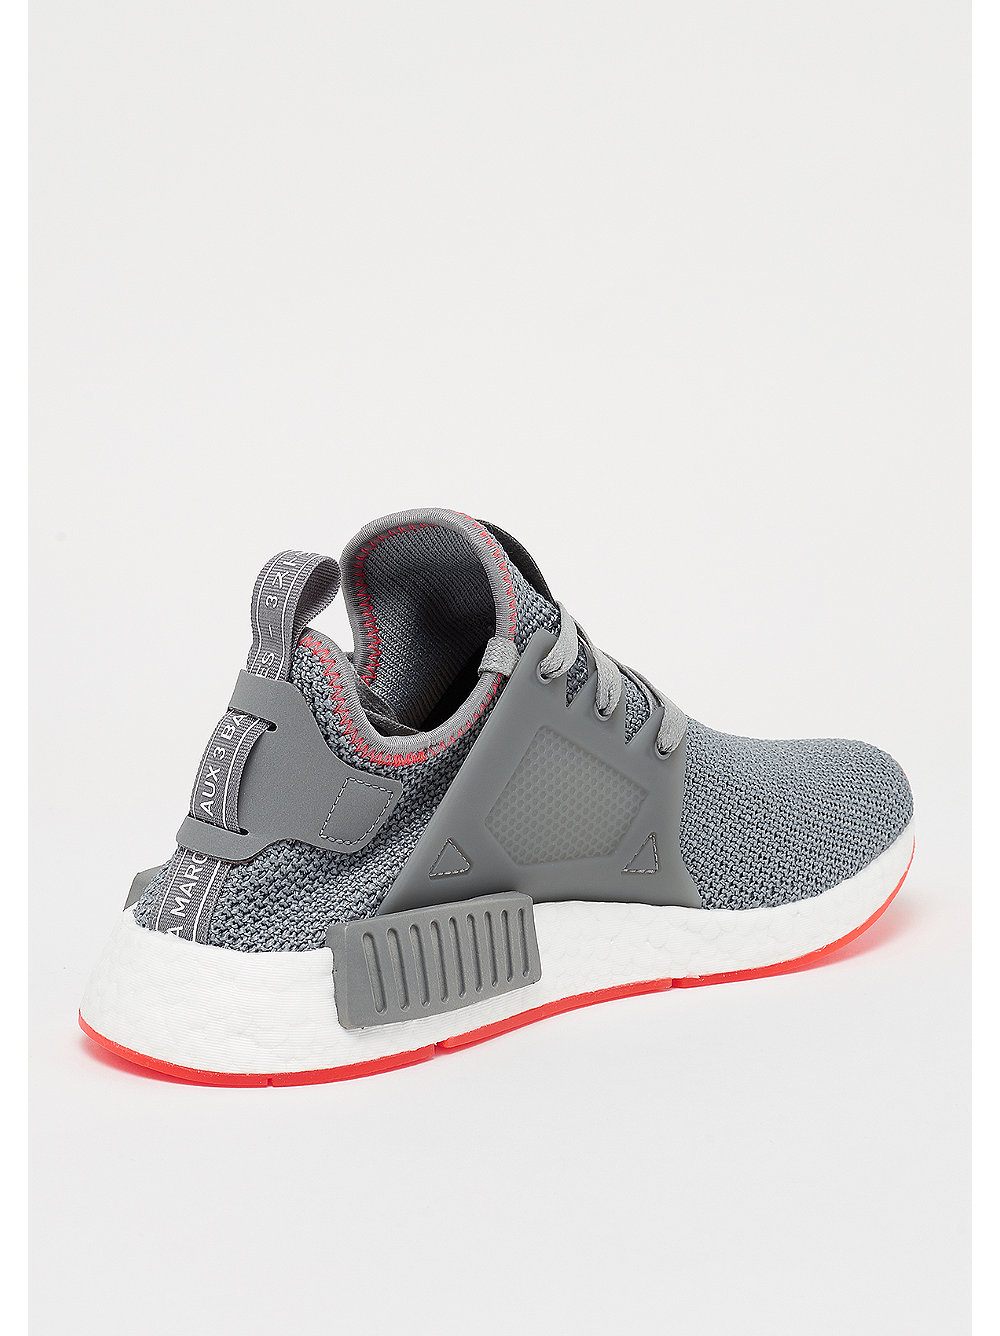 Adidas NMD XR1 Trainershop.co